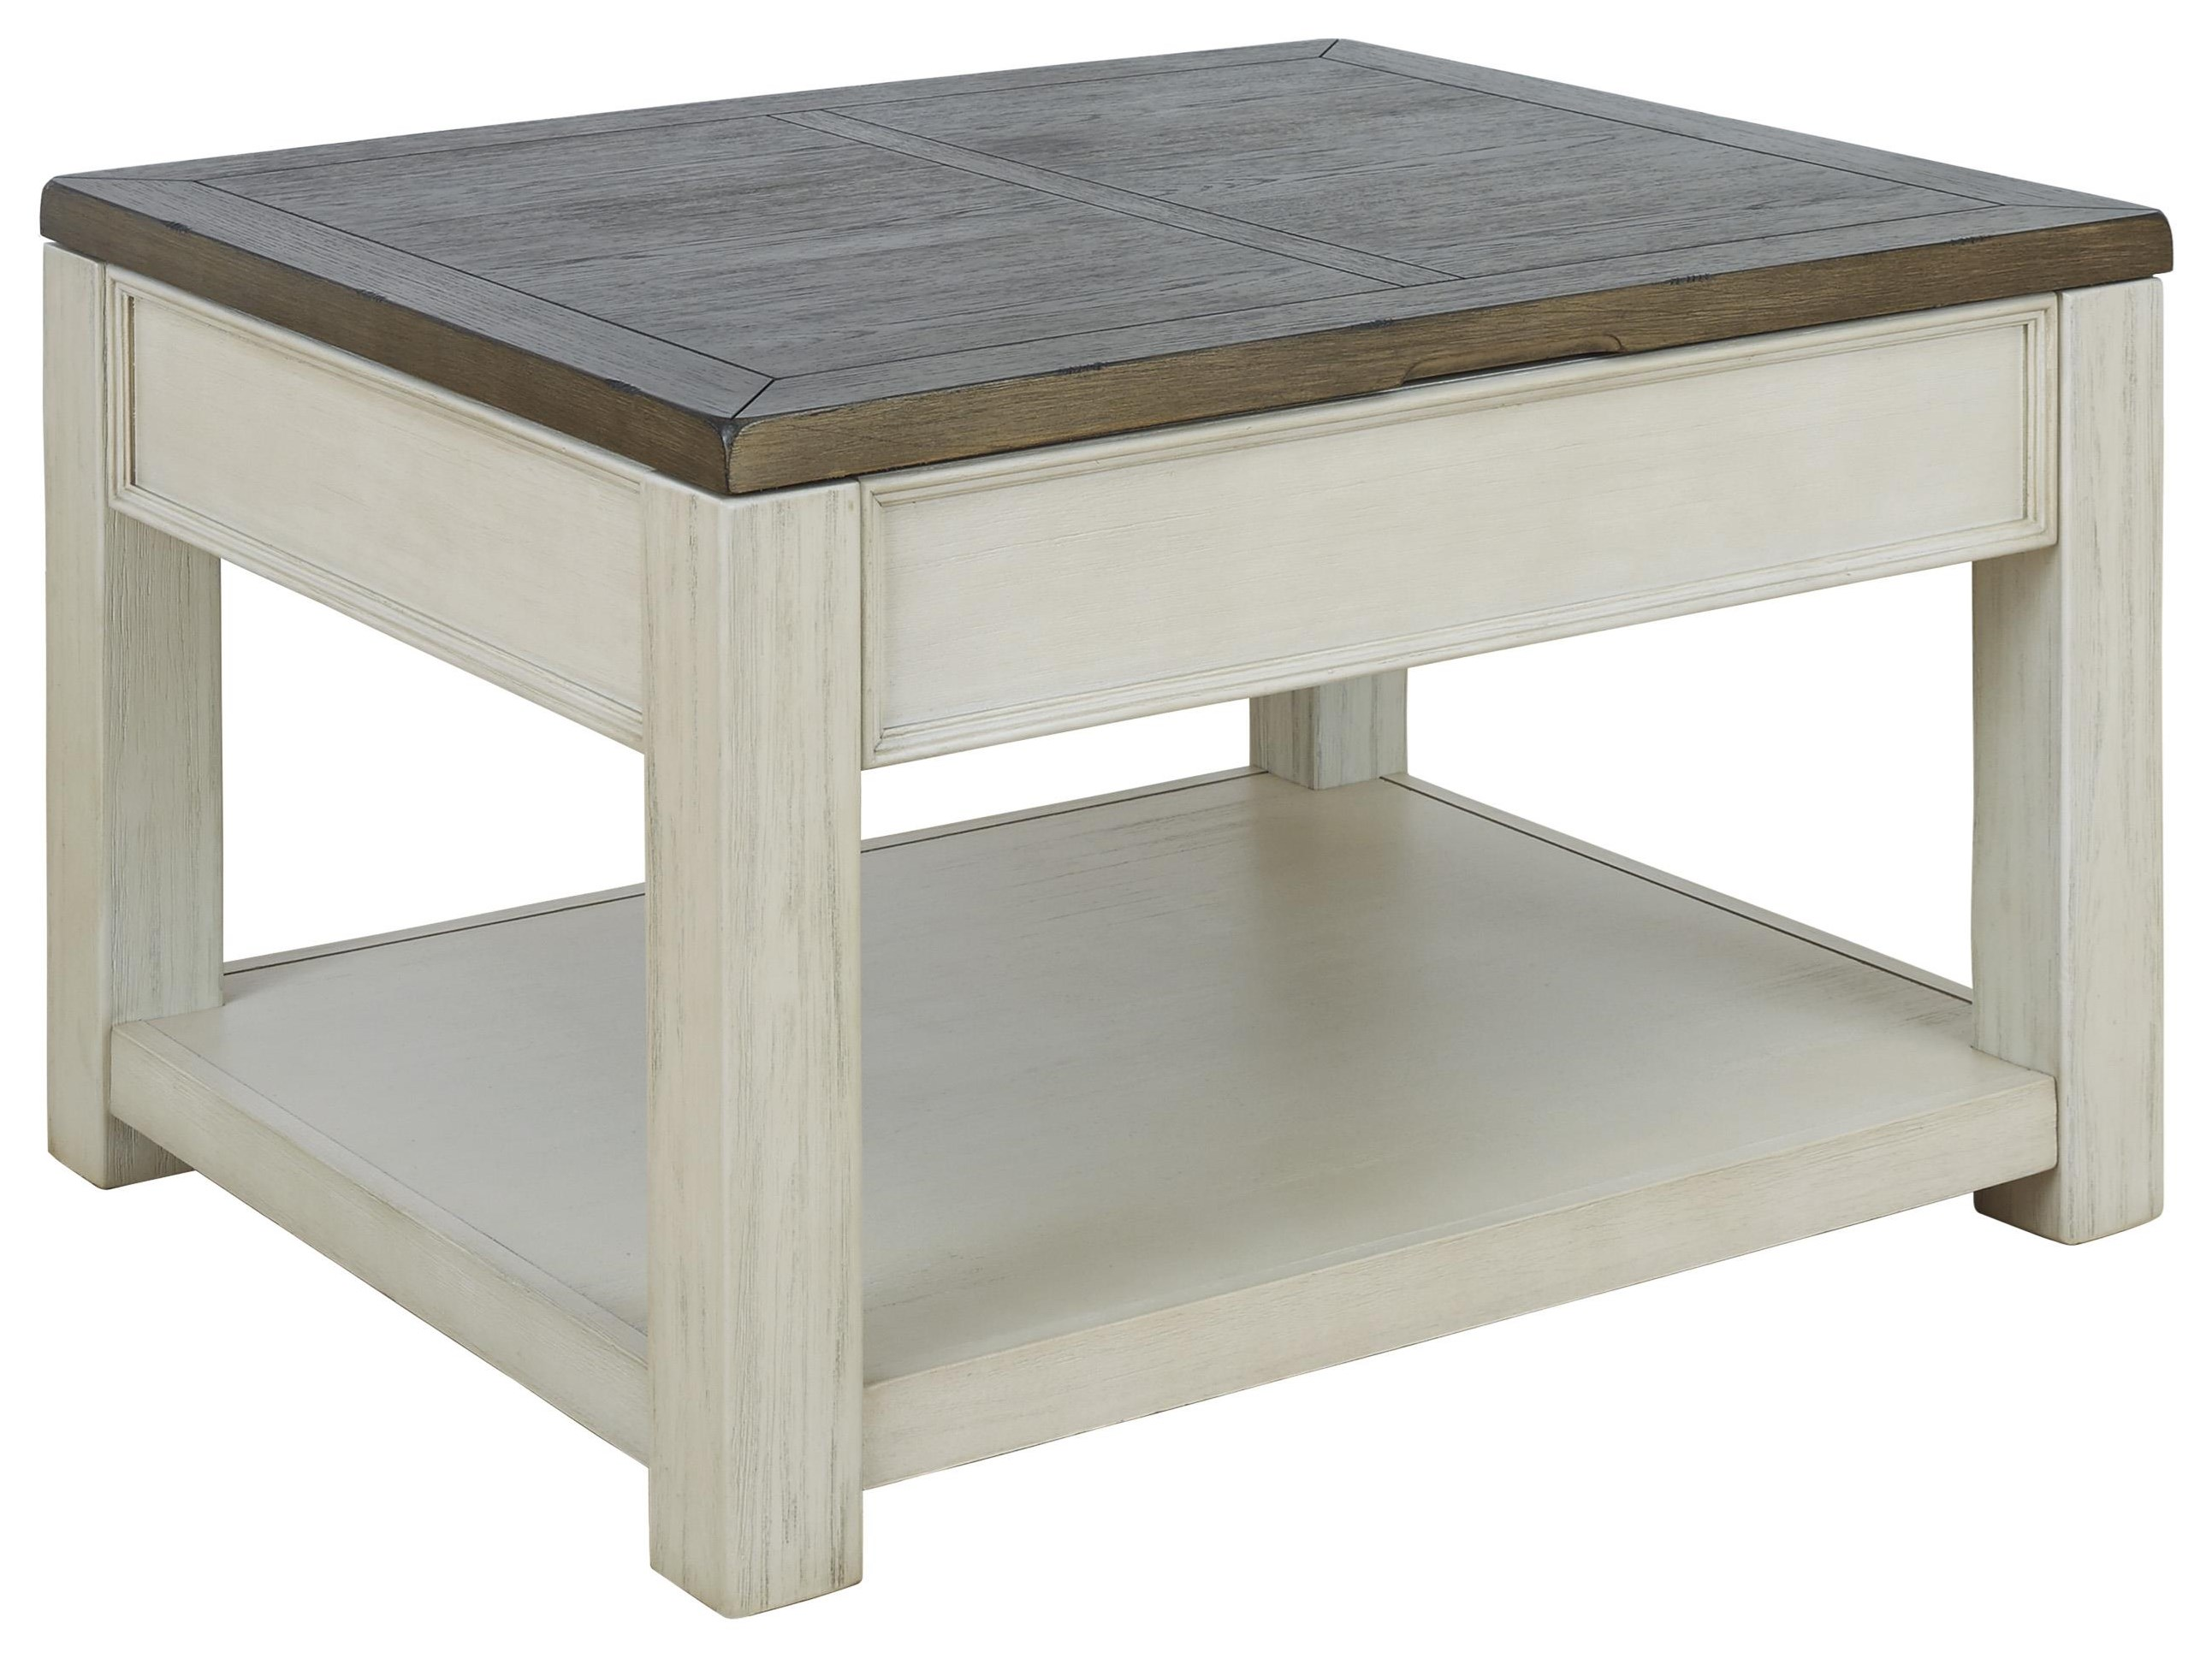 Bolanburg Cocktail Table, End Table and Sofa Table Set by Signature Design by Ashley at Sam Levitz Furniture